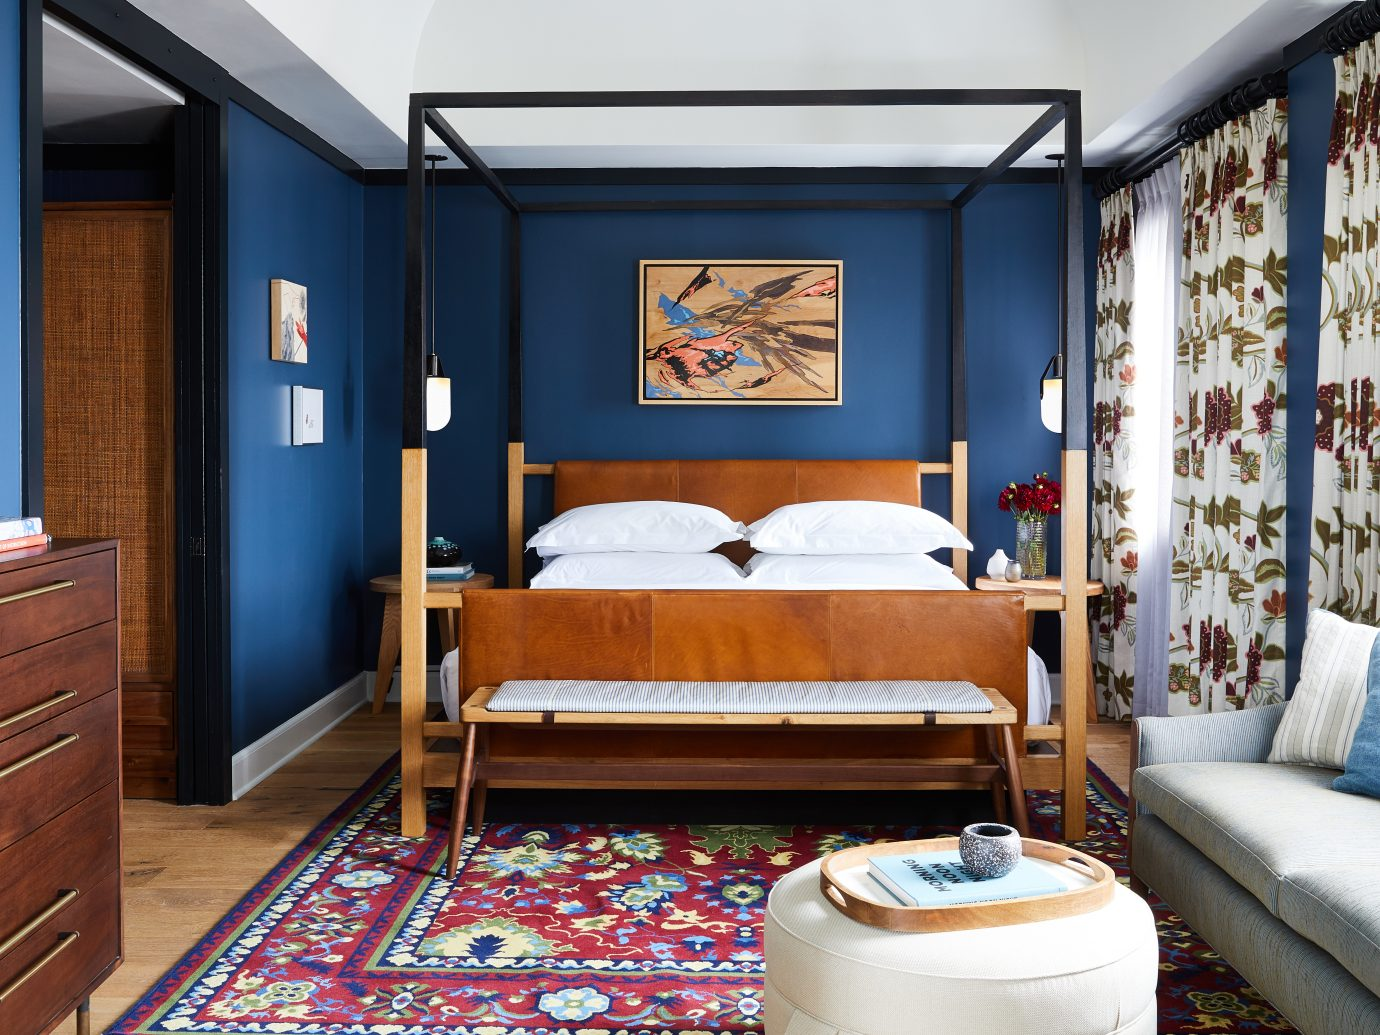 Bedroom of the Revival Hotel in Baltimore